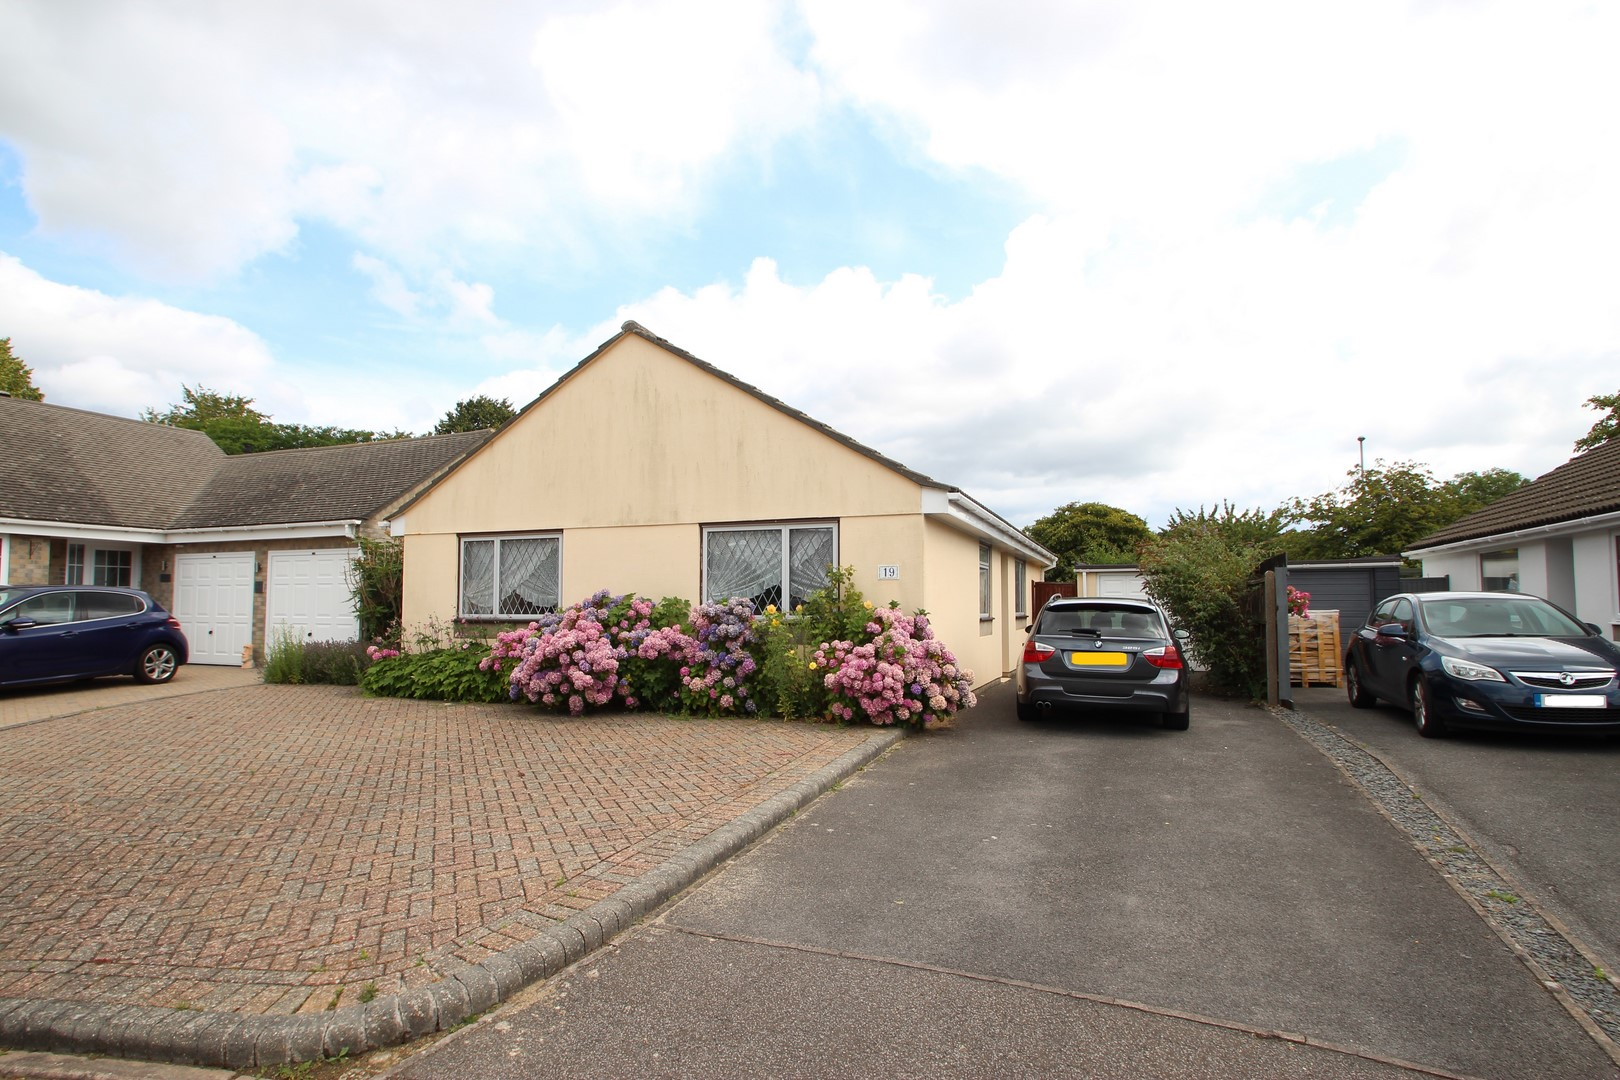 3 Bedroom Bungalow in Mudeford